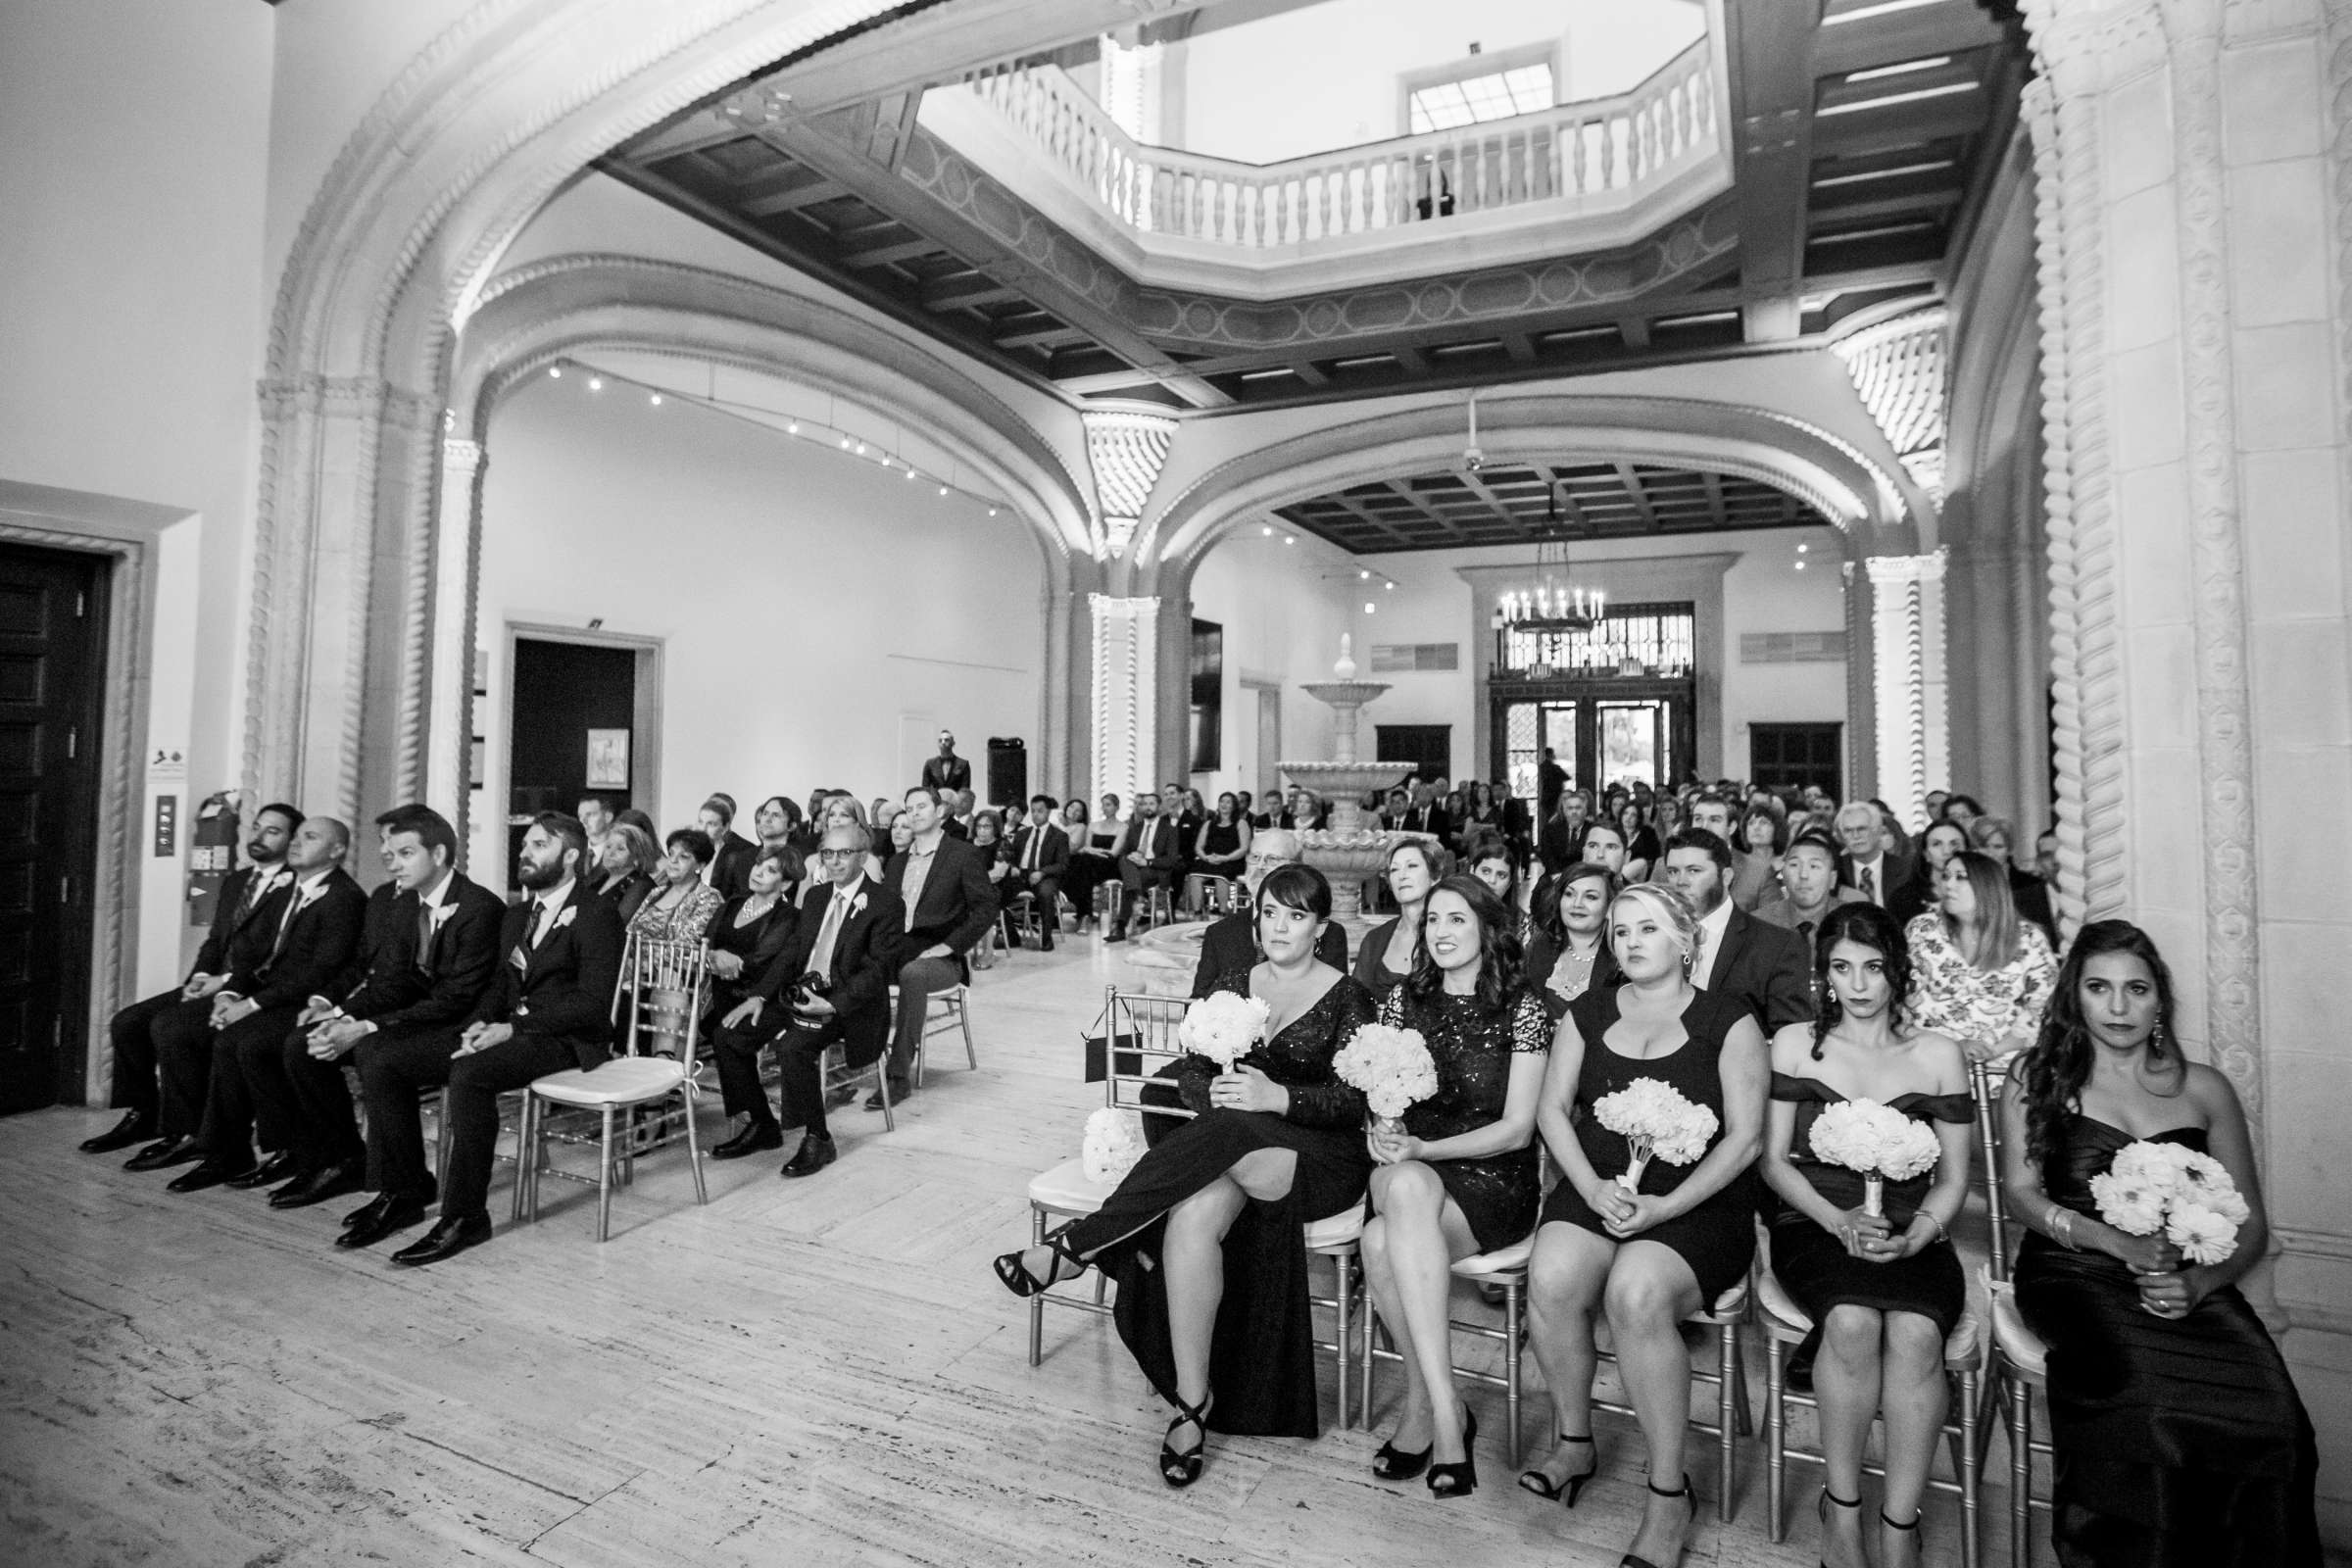 San Diego Museum of Art Wedding coordinated by First Comes Love Weddings & Events, Ruthie and Larry Wedding Photo #236800 by True Photography